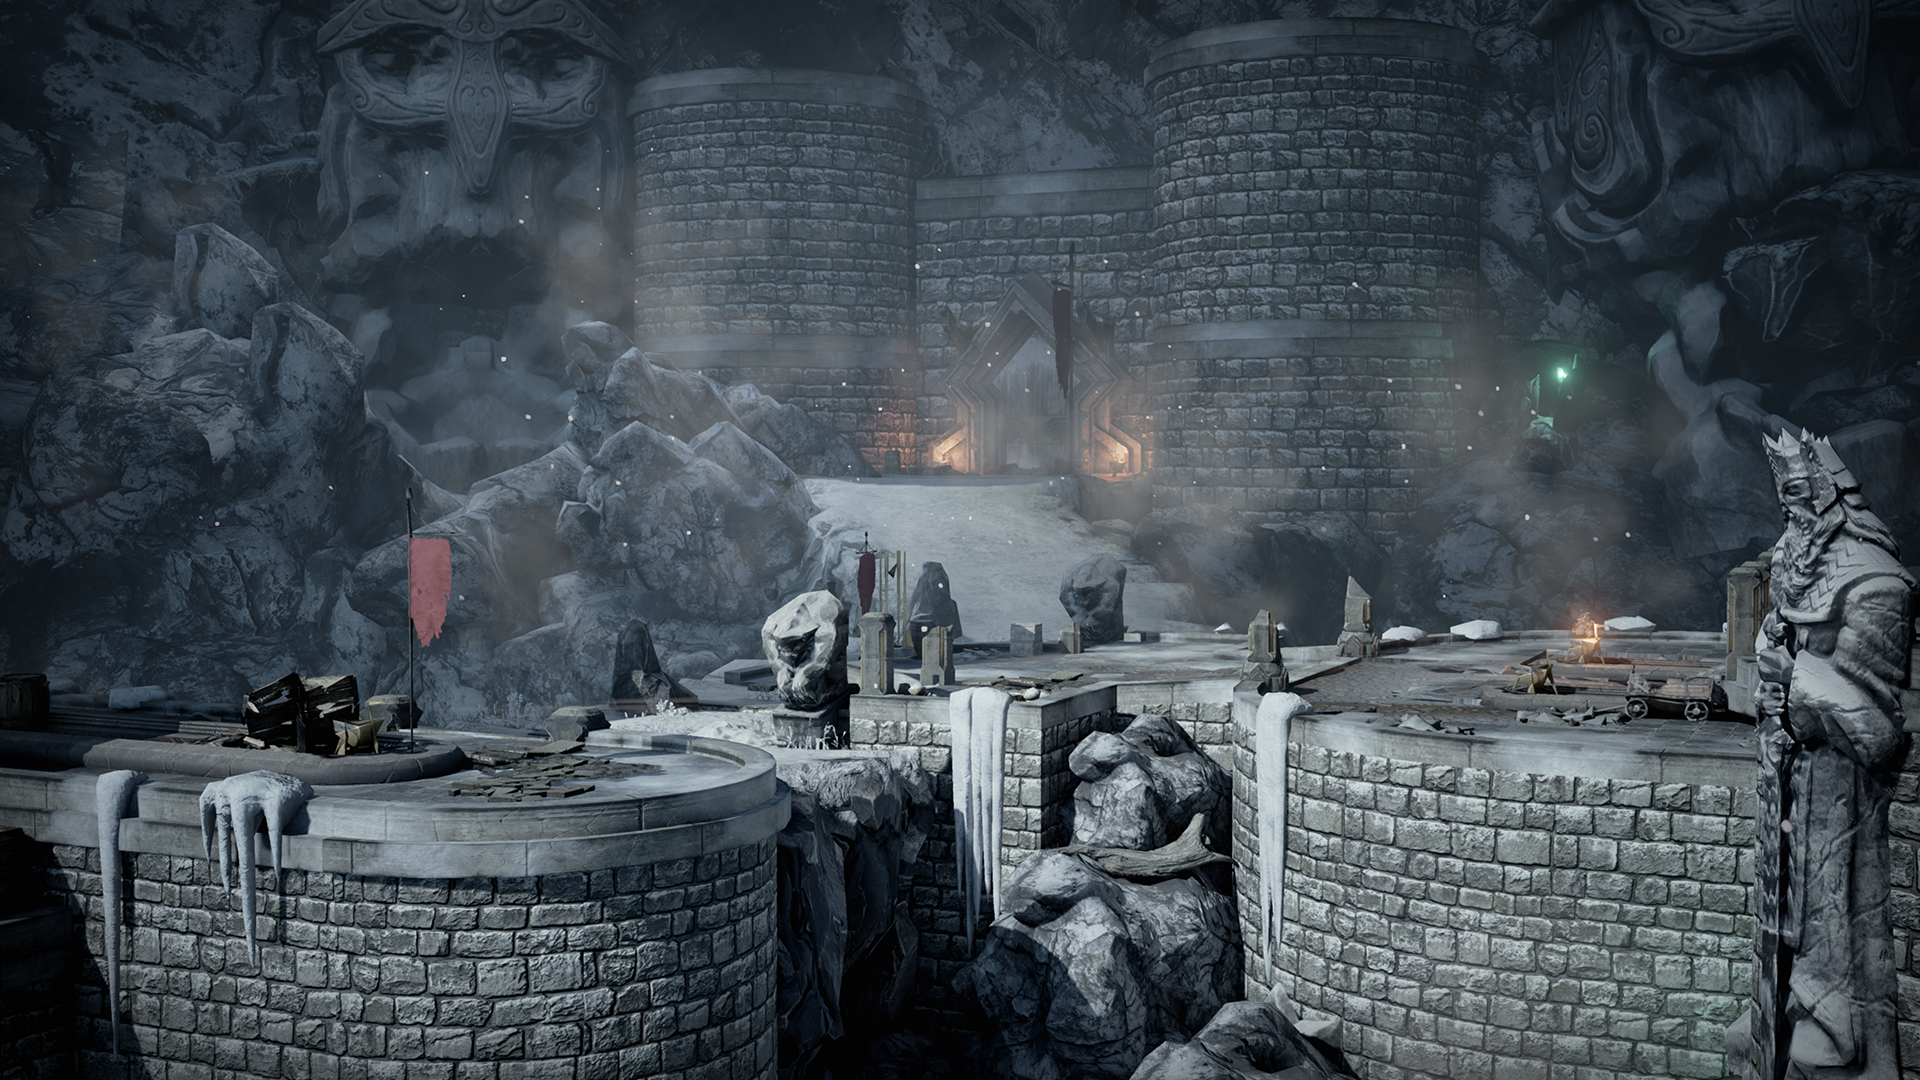 Infinity Blade Ice Lands By Epic Games In Epic Showcase Environments Ue4 Marketplace